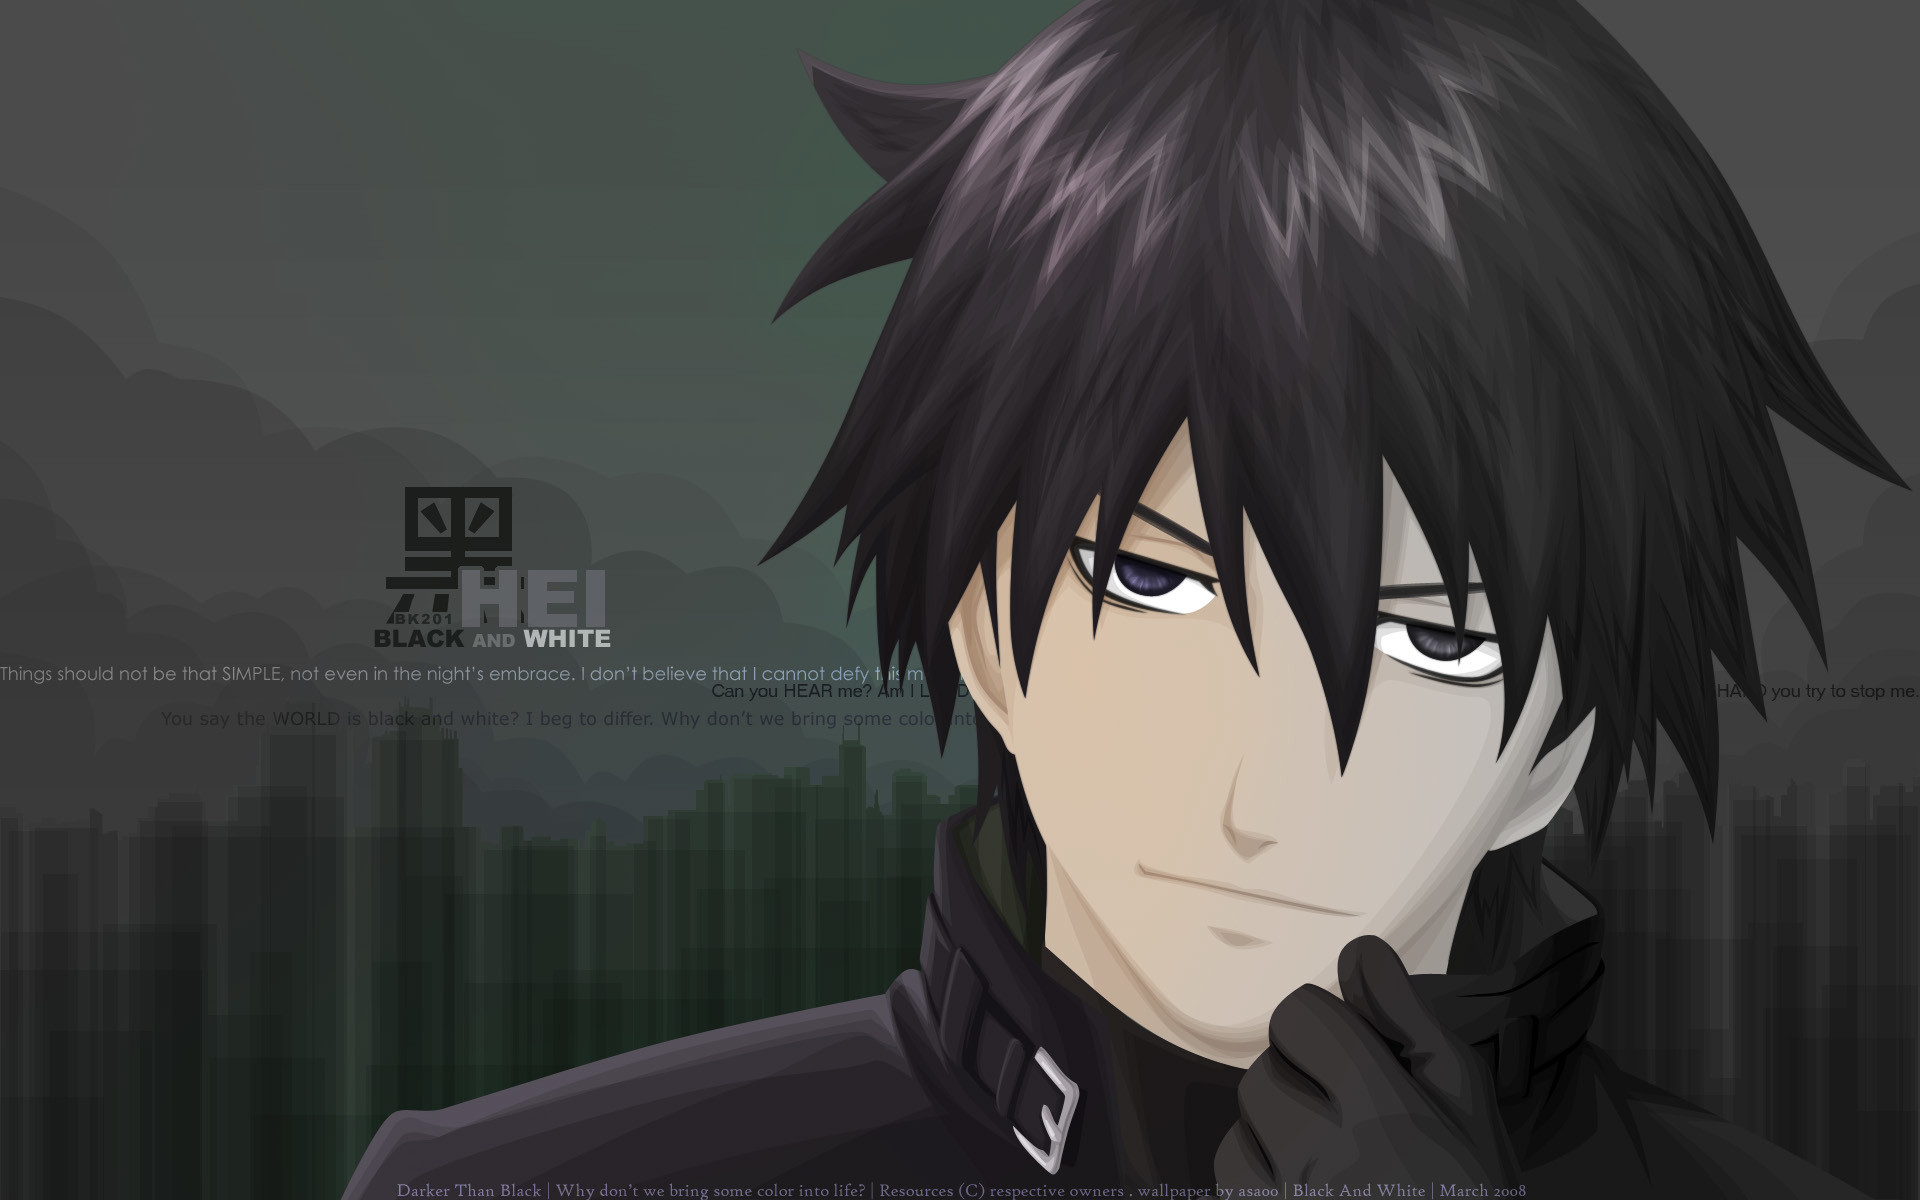 1920x1200 Anime - Darker Than Black Hei (Darker than Black) Wallpaper